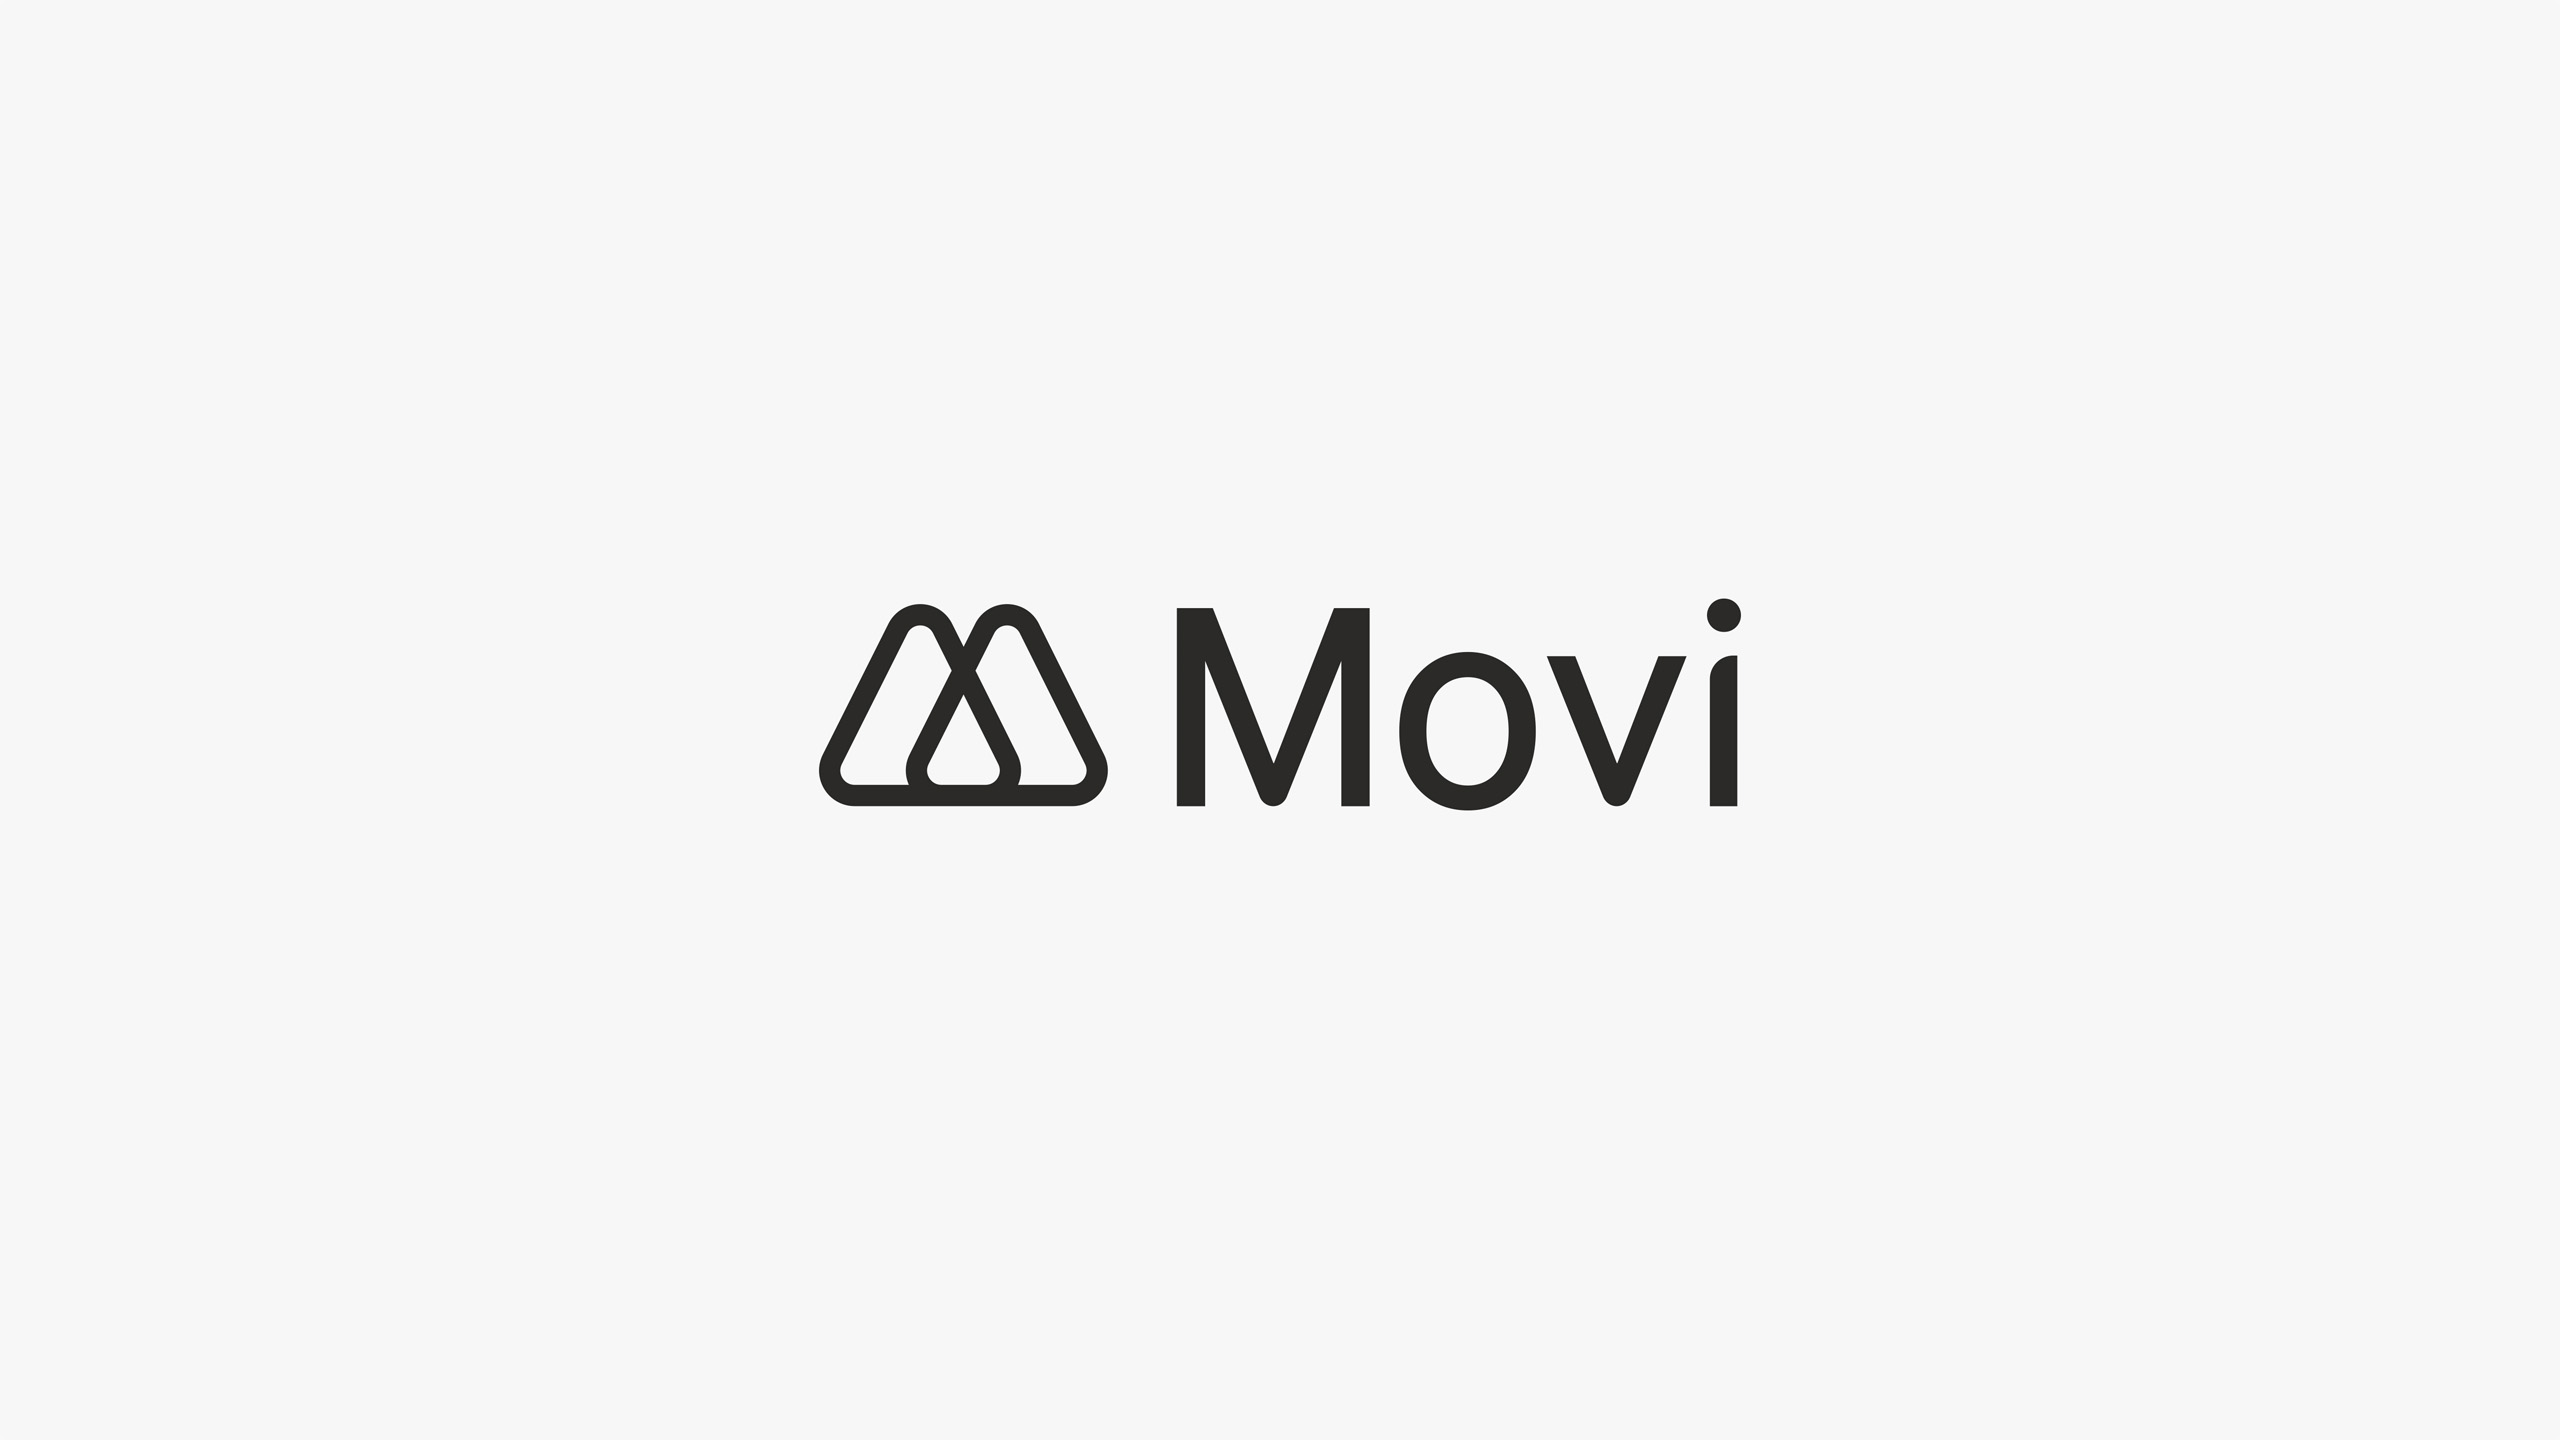 movi-logo-lock-up-01